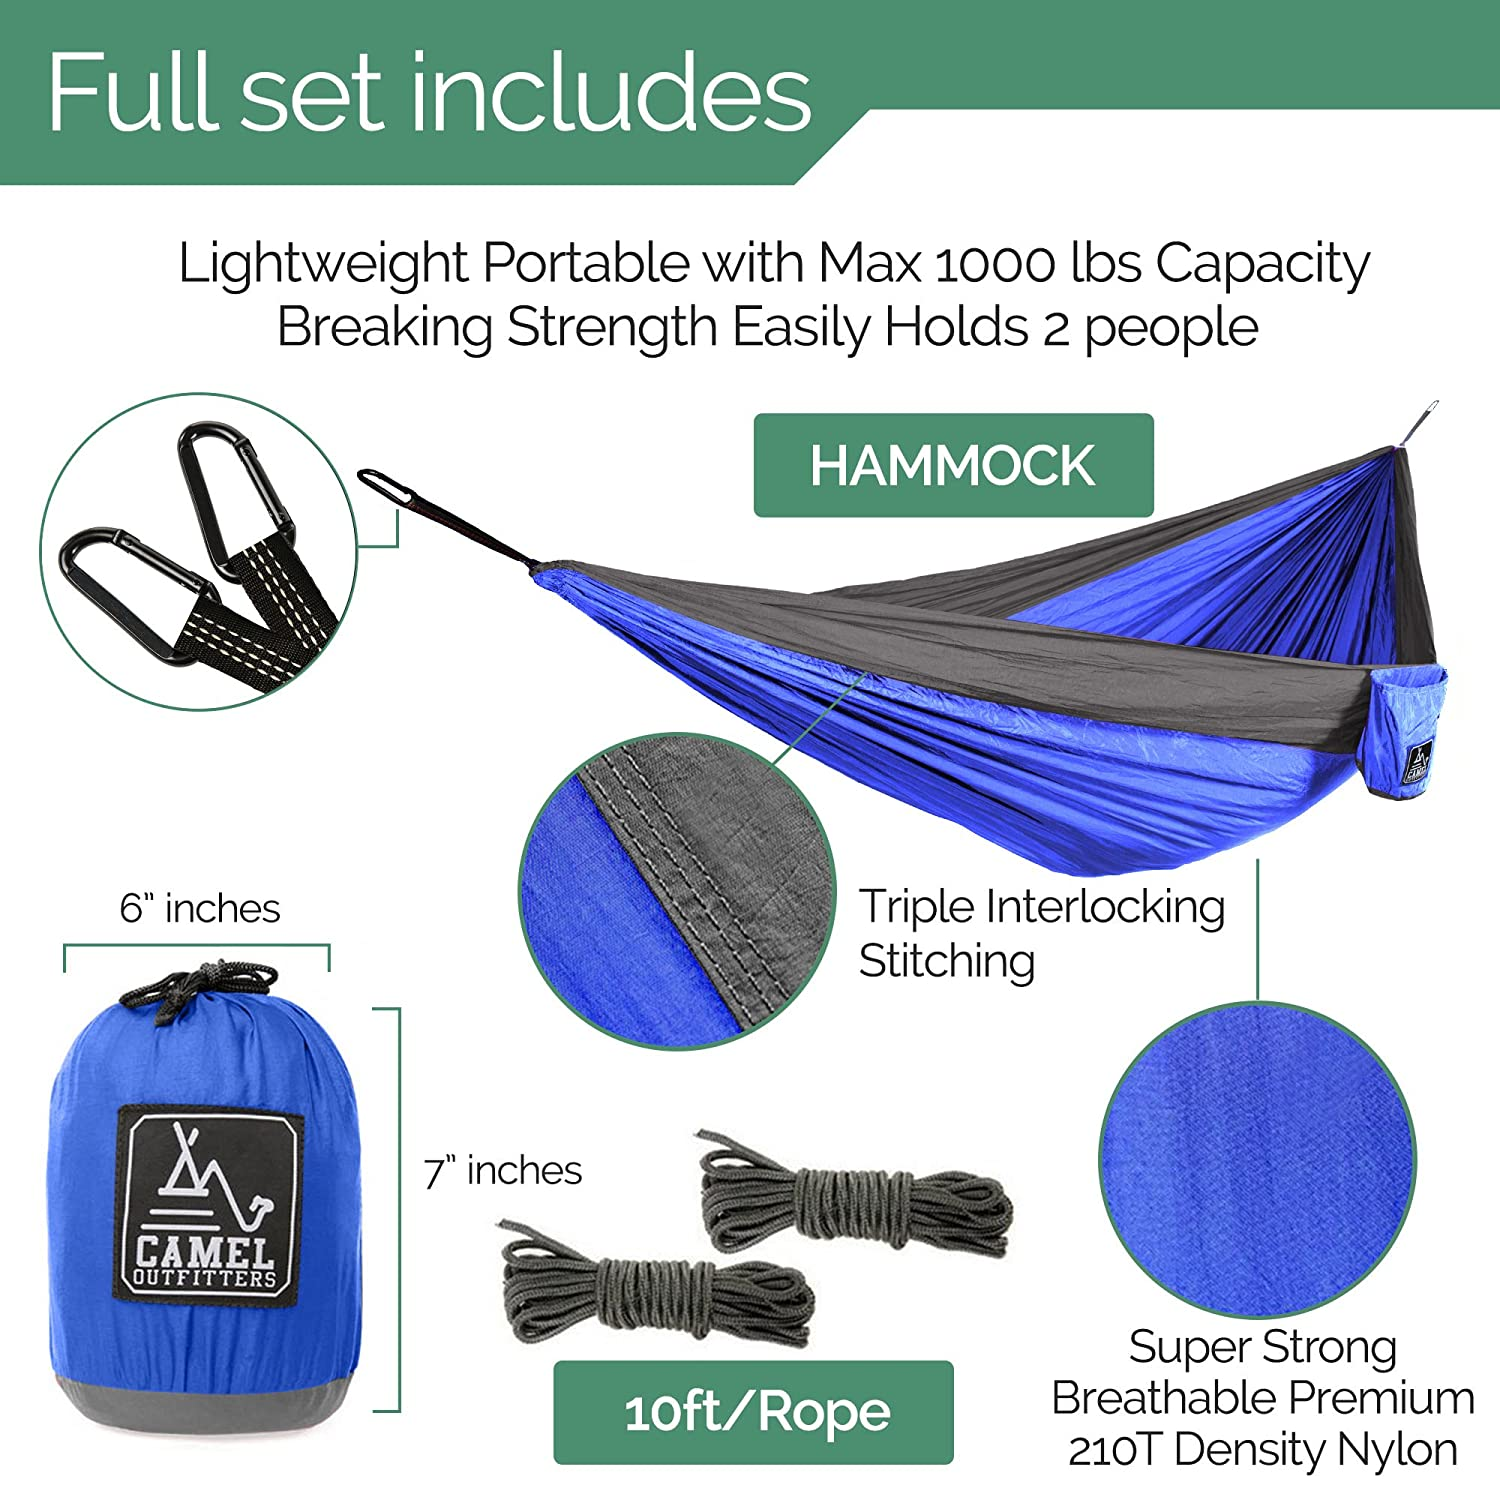 Amazon camel outfitters xl double nylon parachute camping amazon camel outfitters xl double nylon parachute camping hammock lightweight portable with max 1000 lbs capacity carabiners and long rope included cheapraybanclubmaster Images